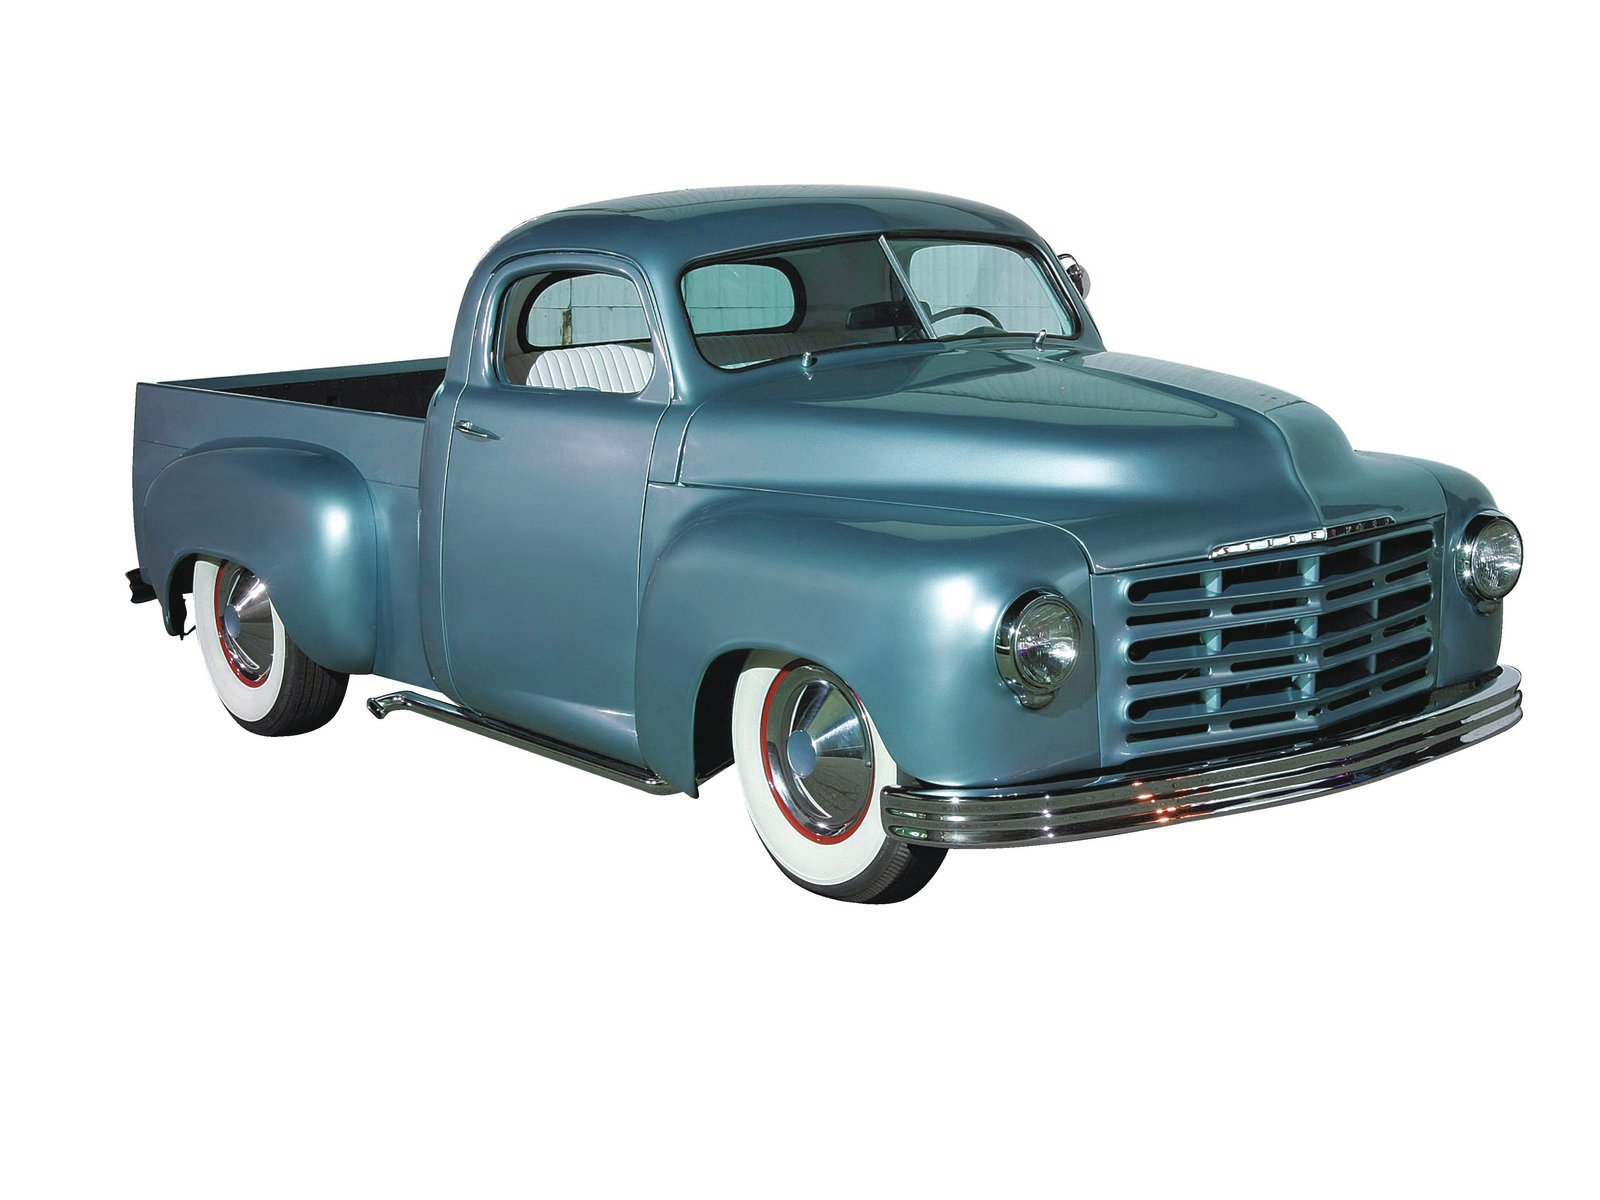 Studebaker truck photo - 7